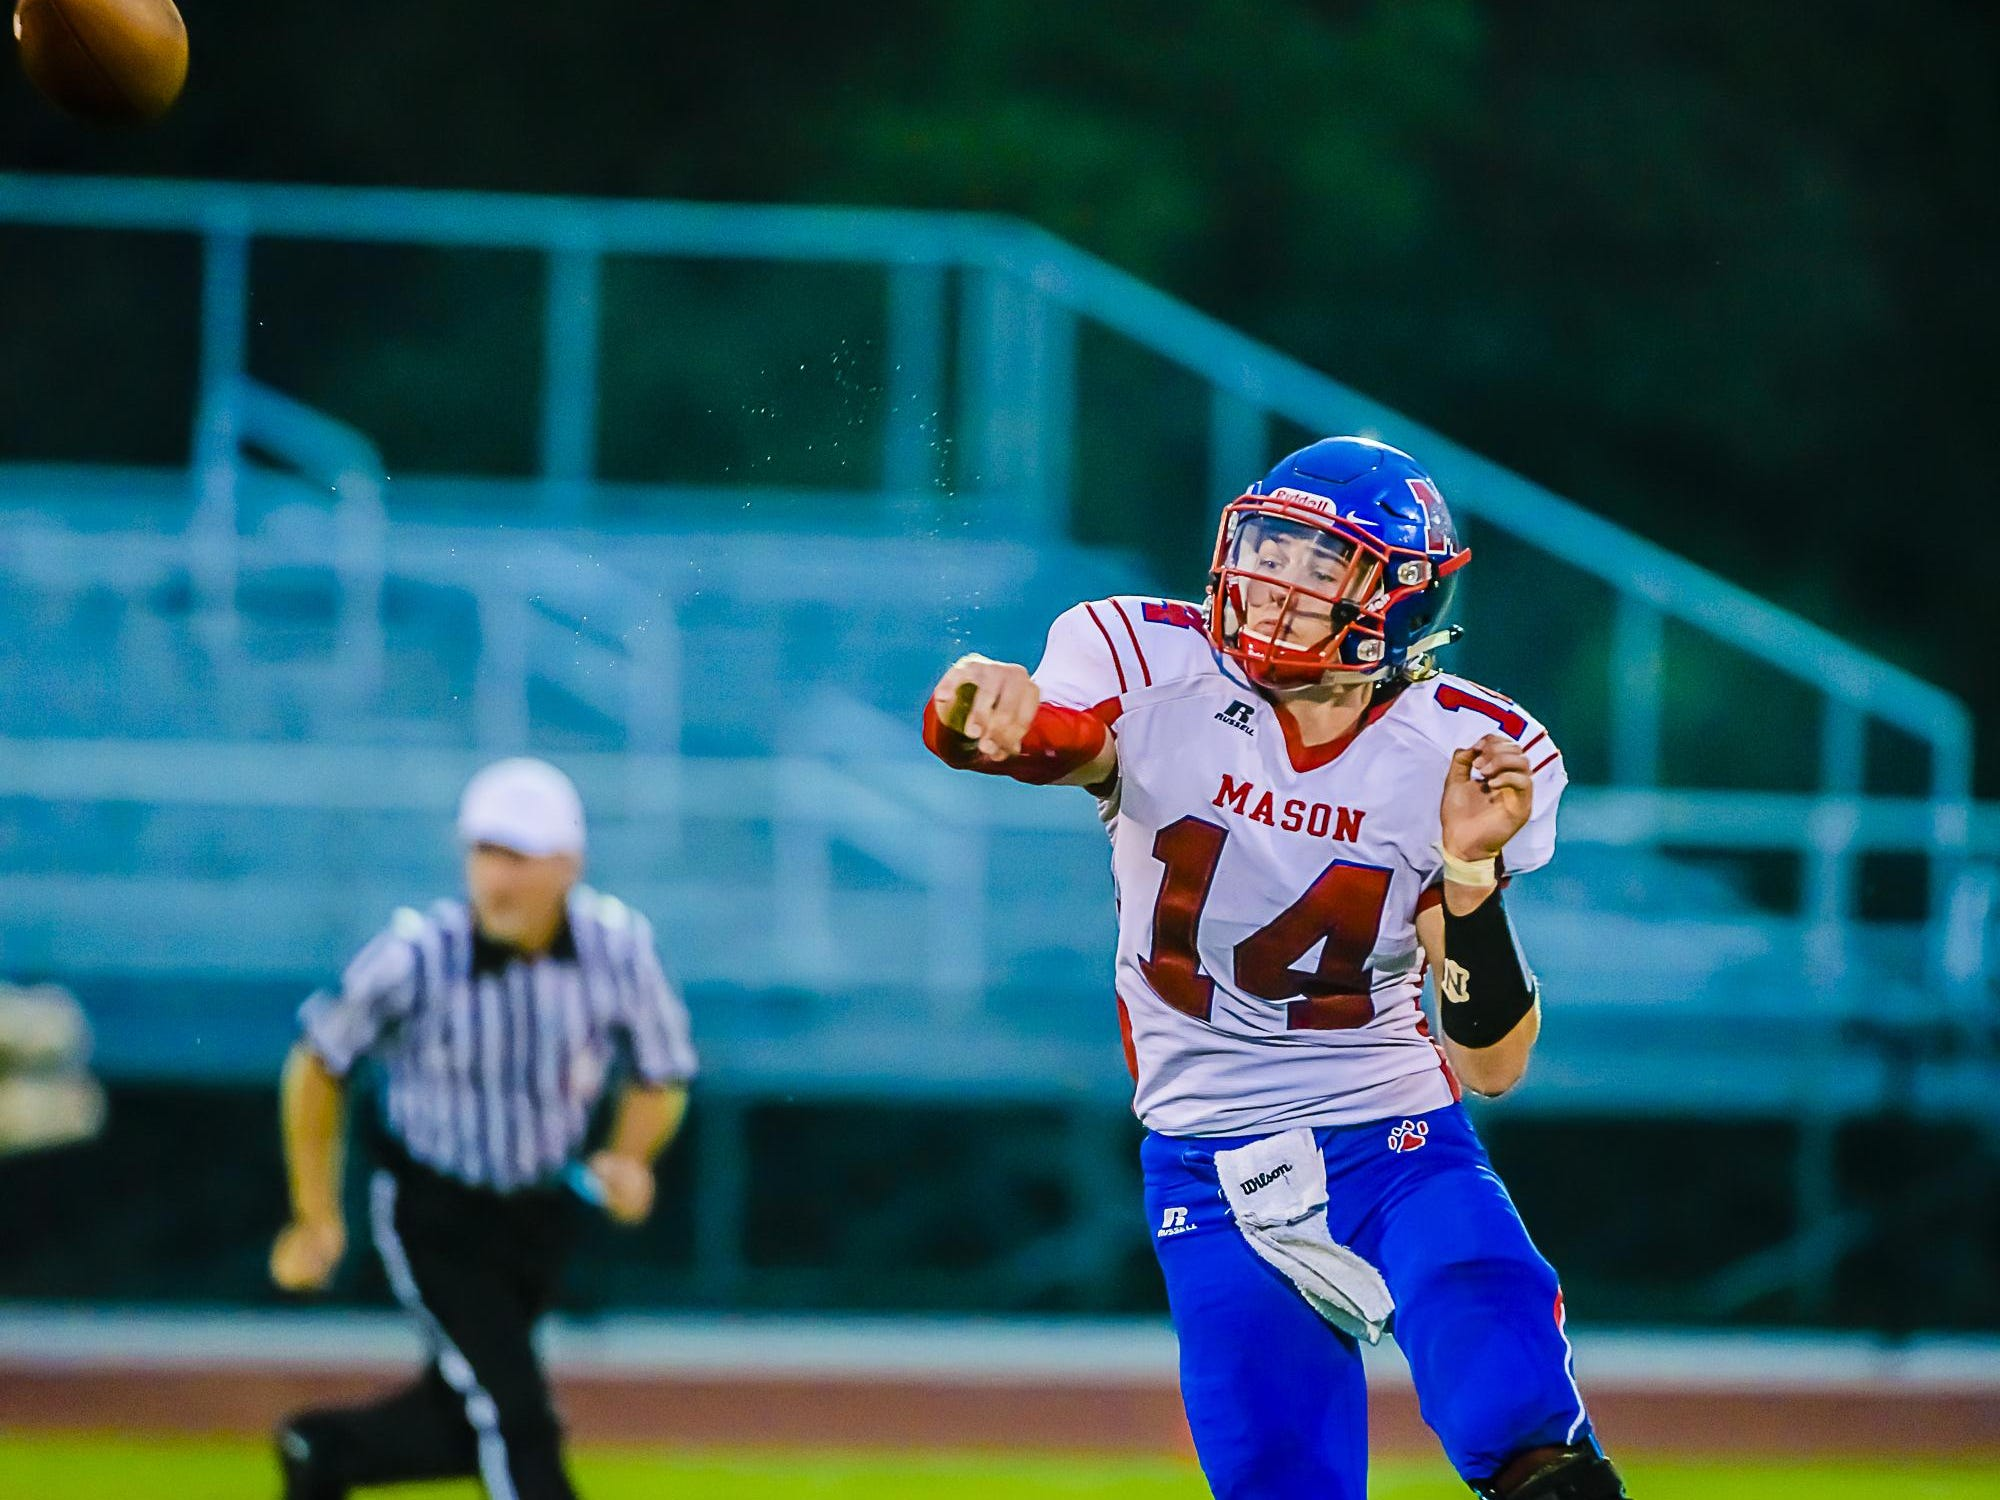 Mason's Jarrett VanHavel is one of the leading passers in the Lansing area.